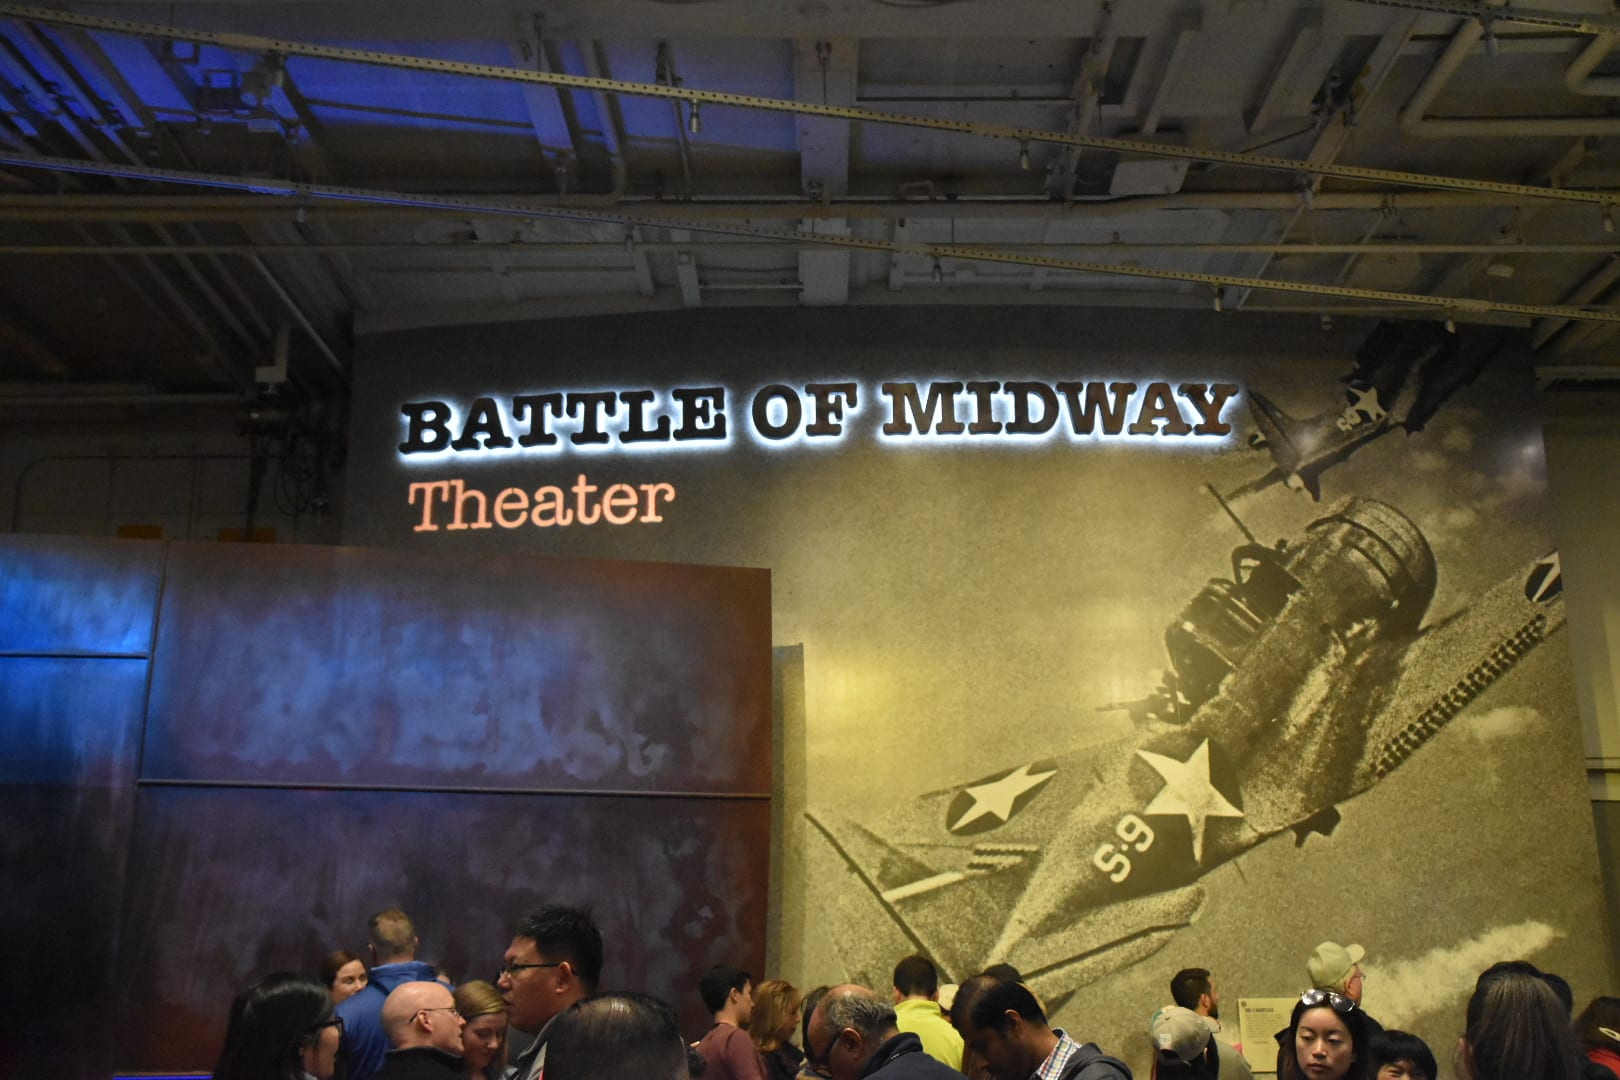 USS Midway Theater